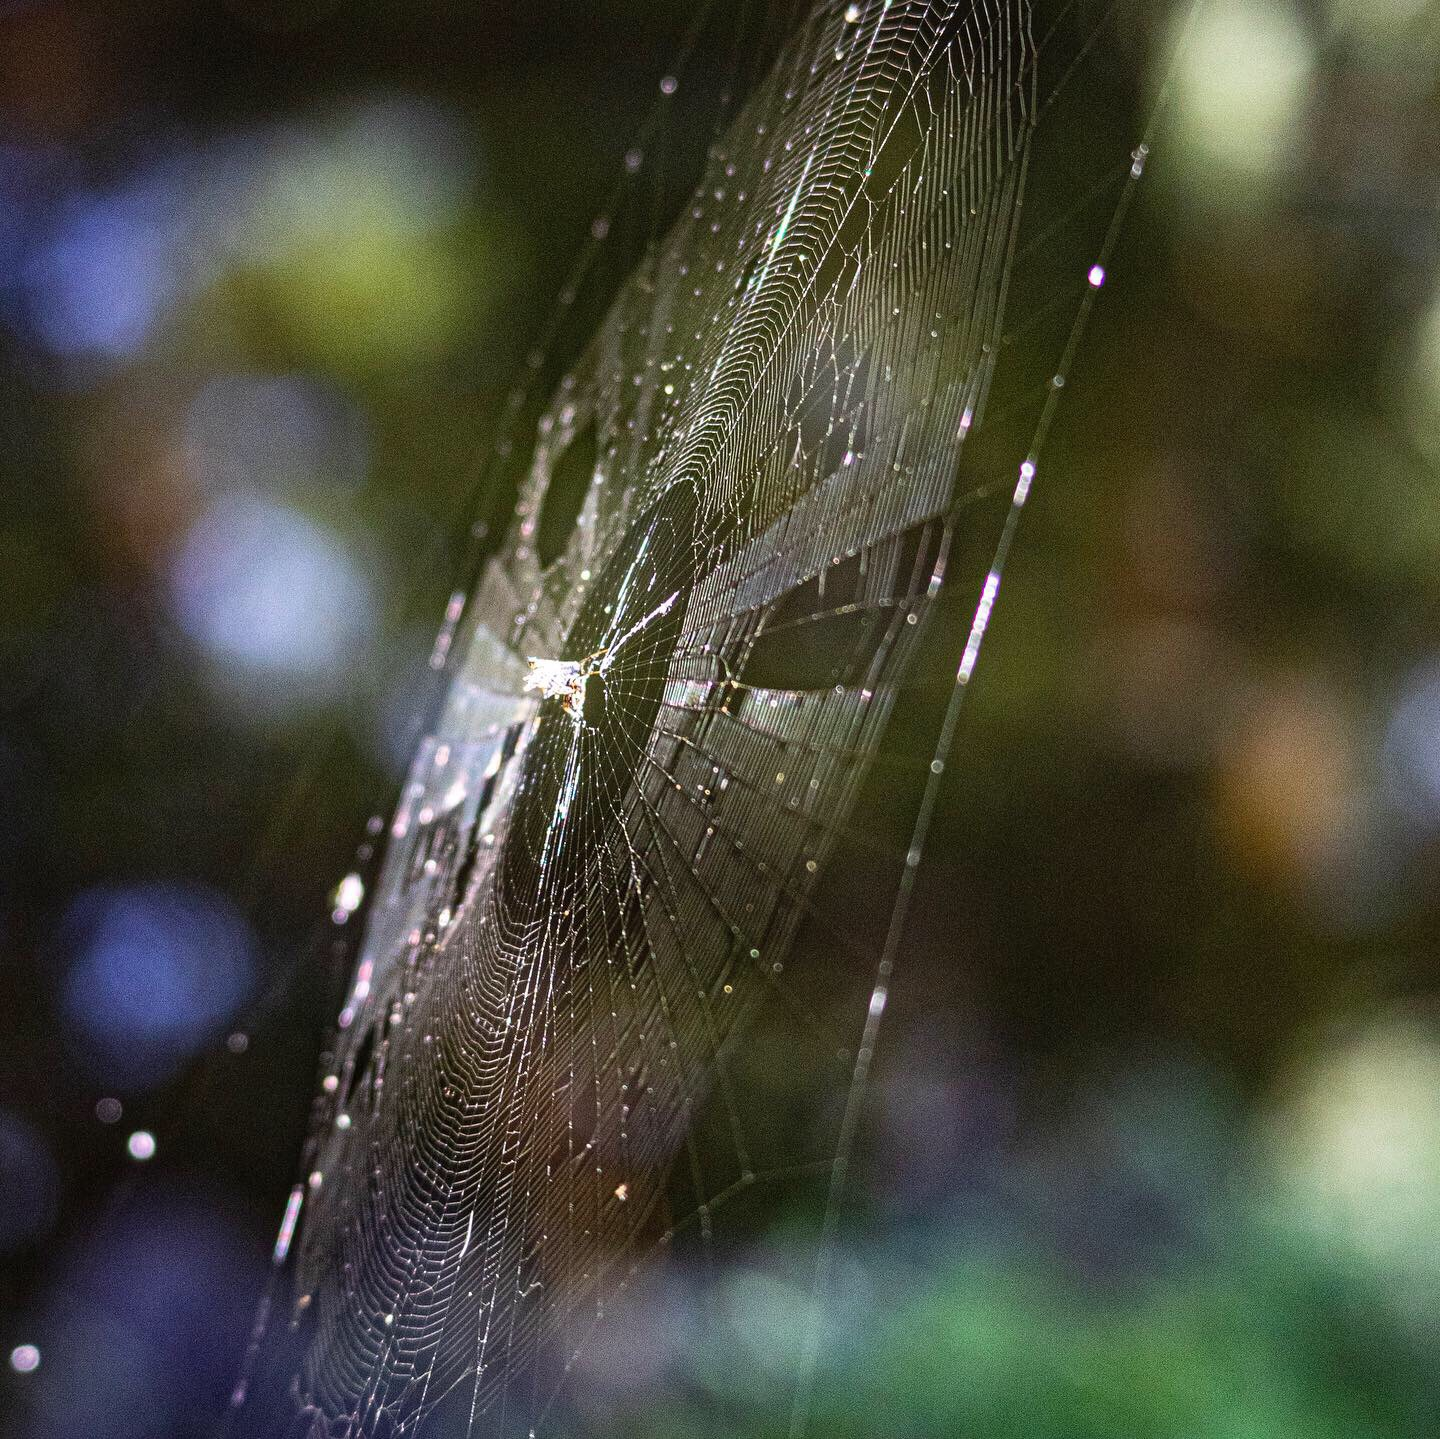 Spider Web 2, JHD